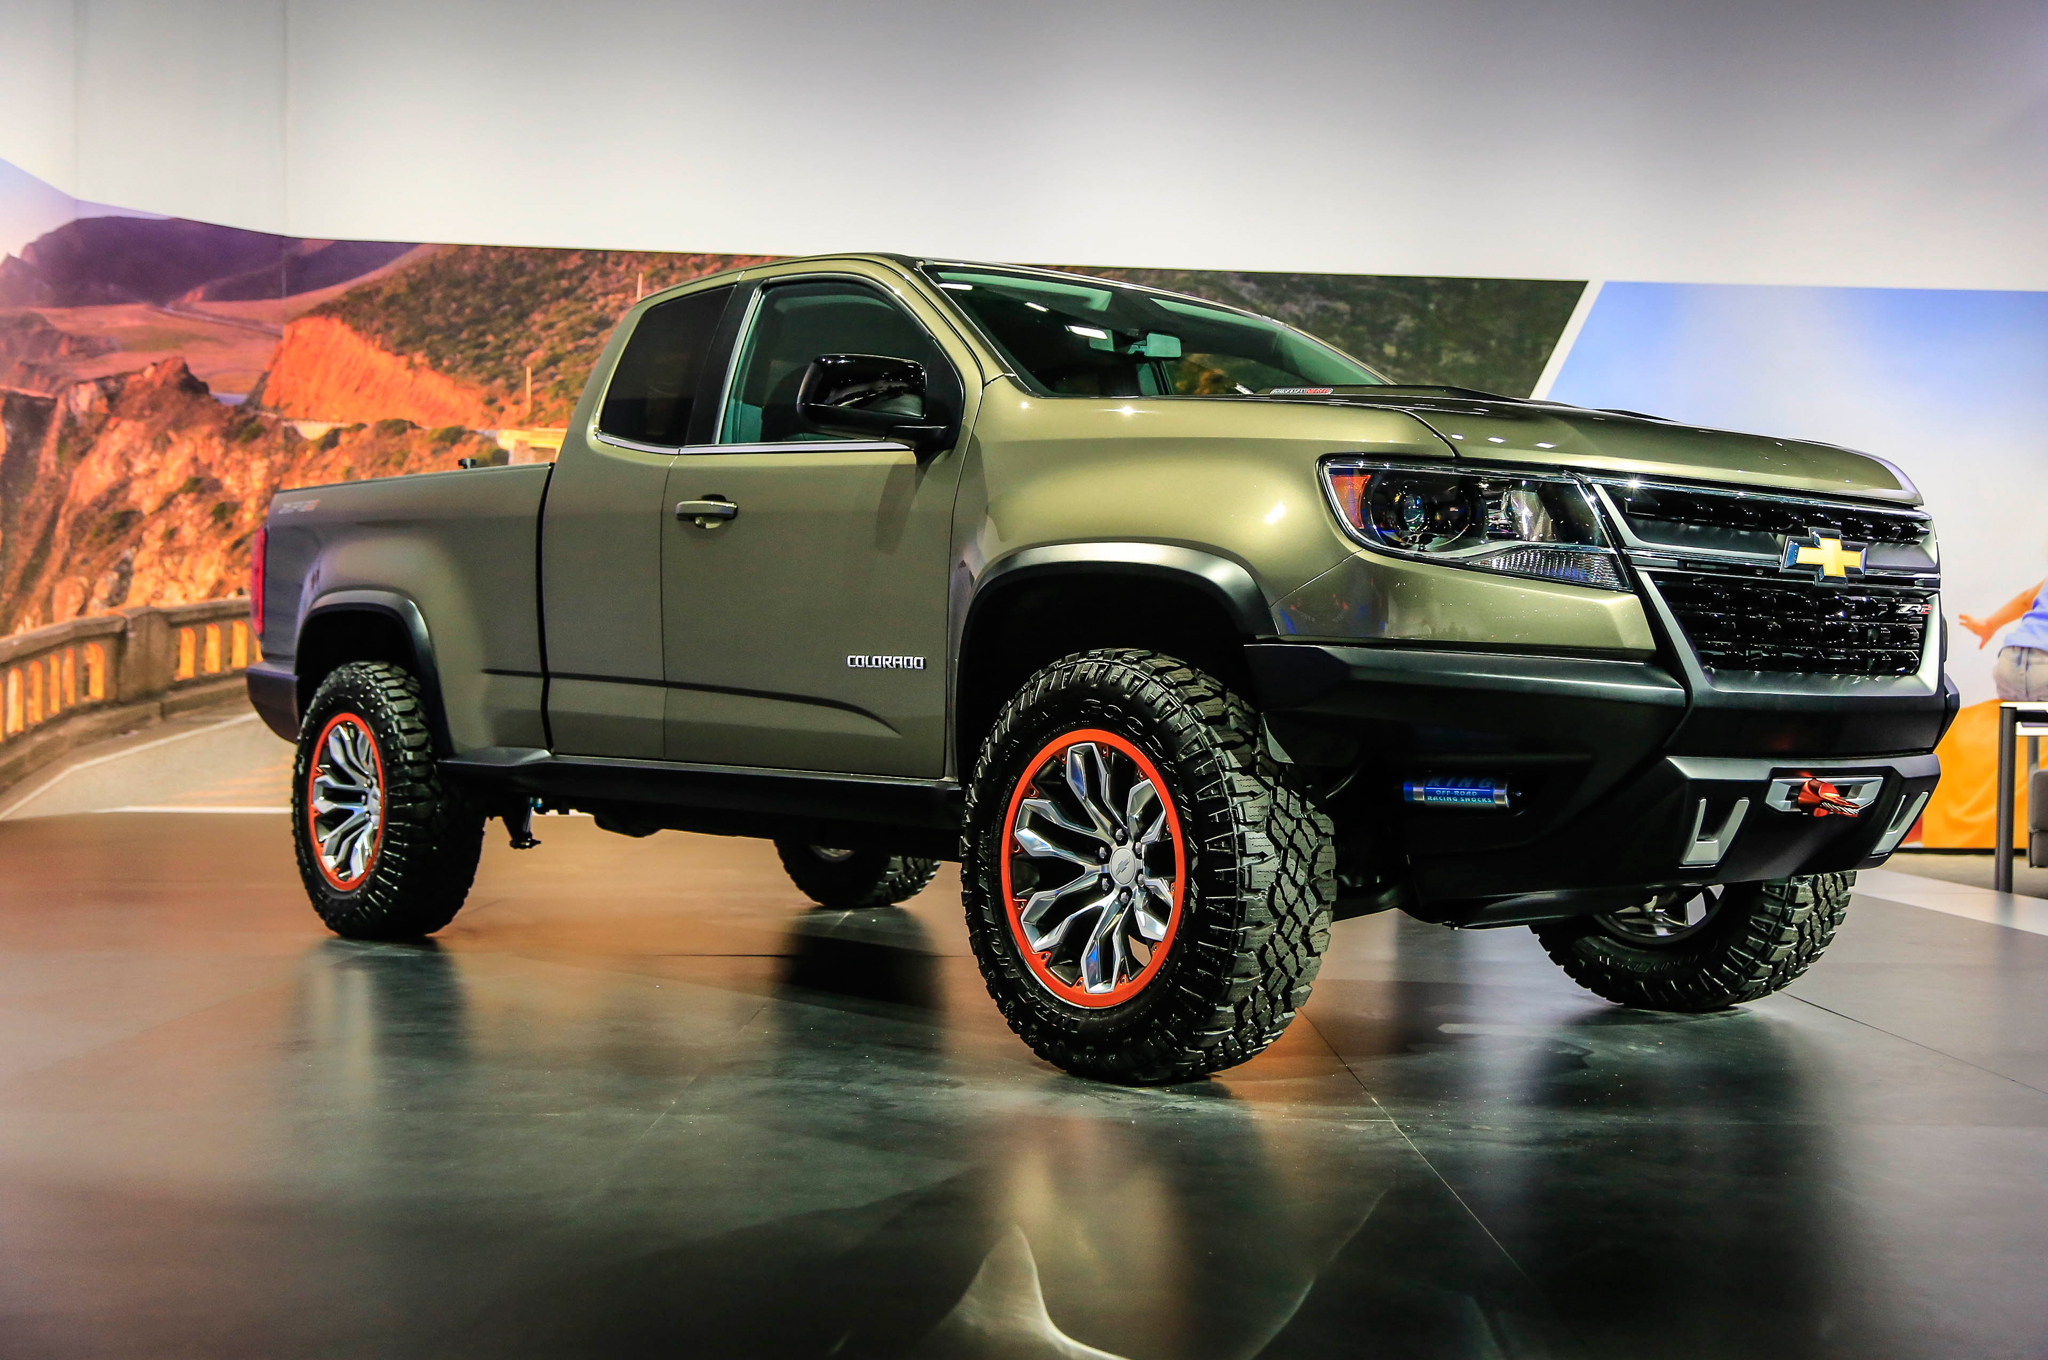 Chevrolets Zr2 Concept Is The Diesel Powered Off Roader You Want